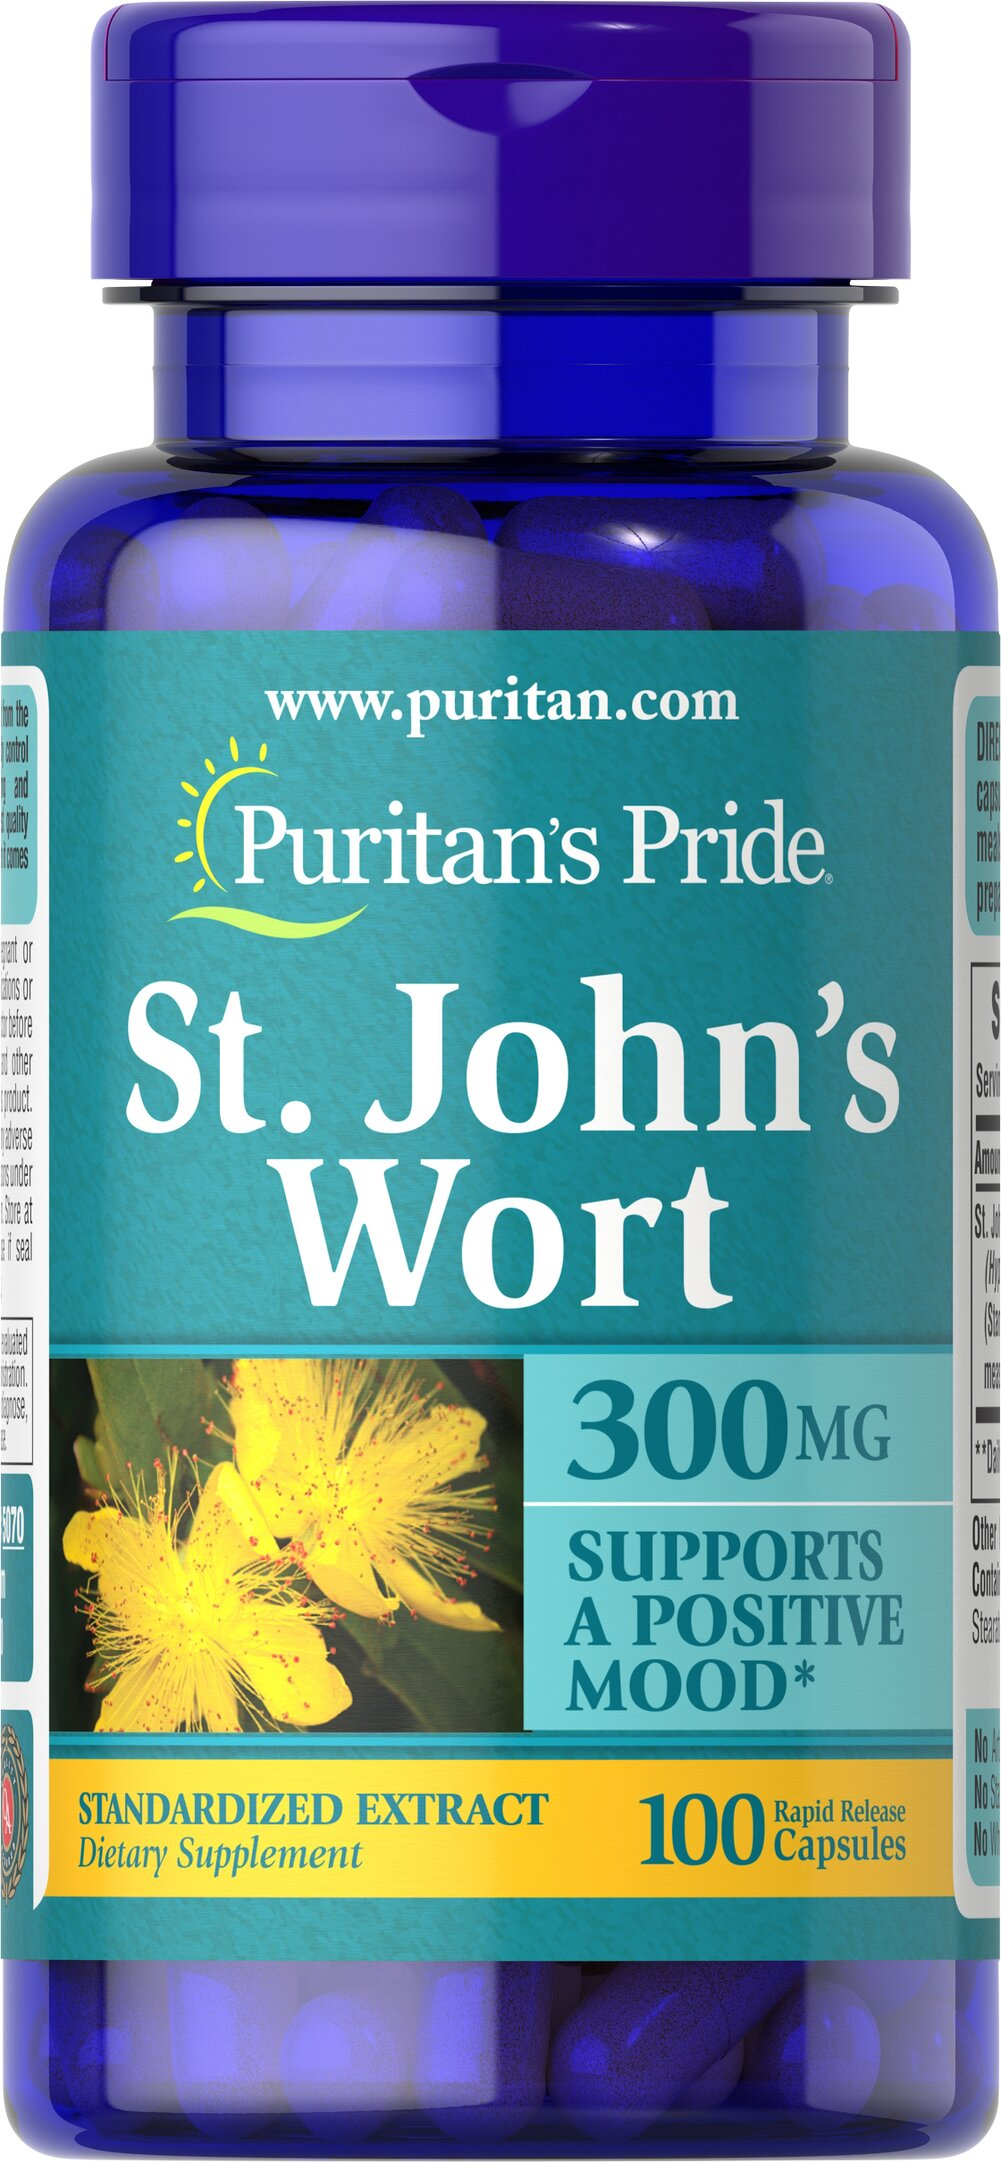 St. John's Wort Standardized Extract 300 mg <p>St. John's Wort has been used for centuries as a tonic to promote mental well-being and peaceful mood.** St. John's Wort can help maintain a positive mood and is perfect for anyone experiencing occasional anxiety and everyday stress.**</p> 100 Capsules 300 mg $14.39